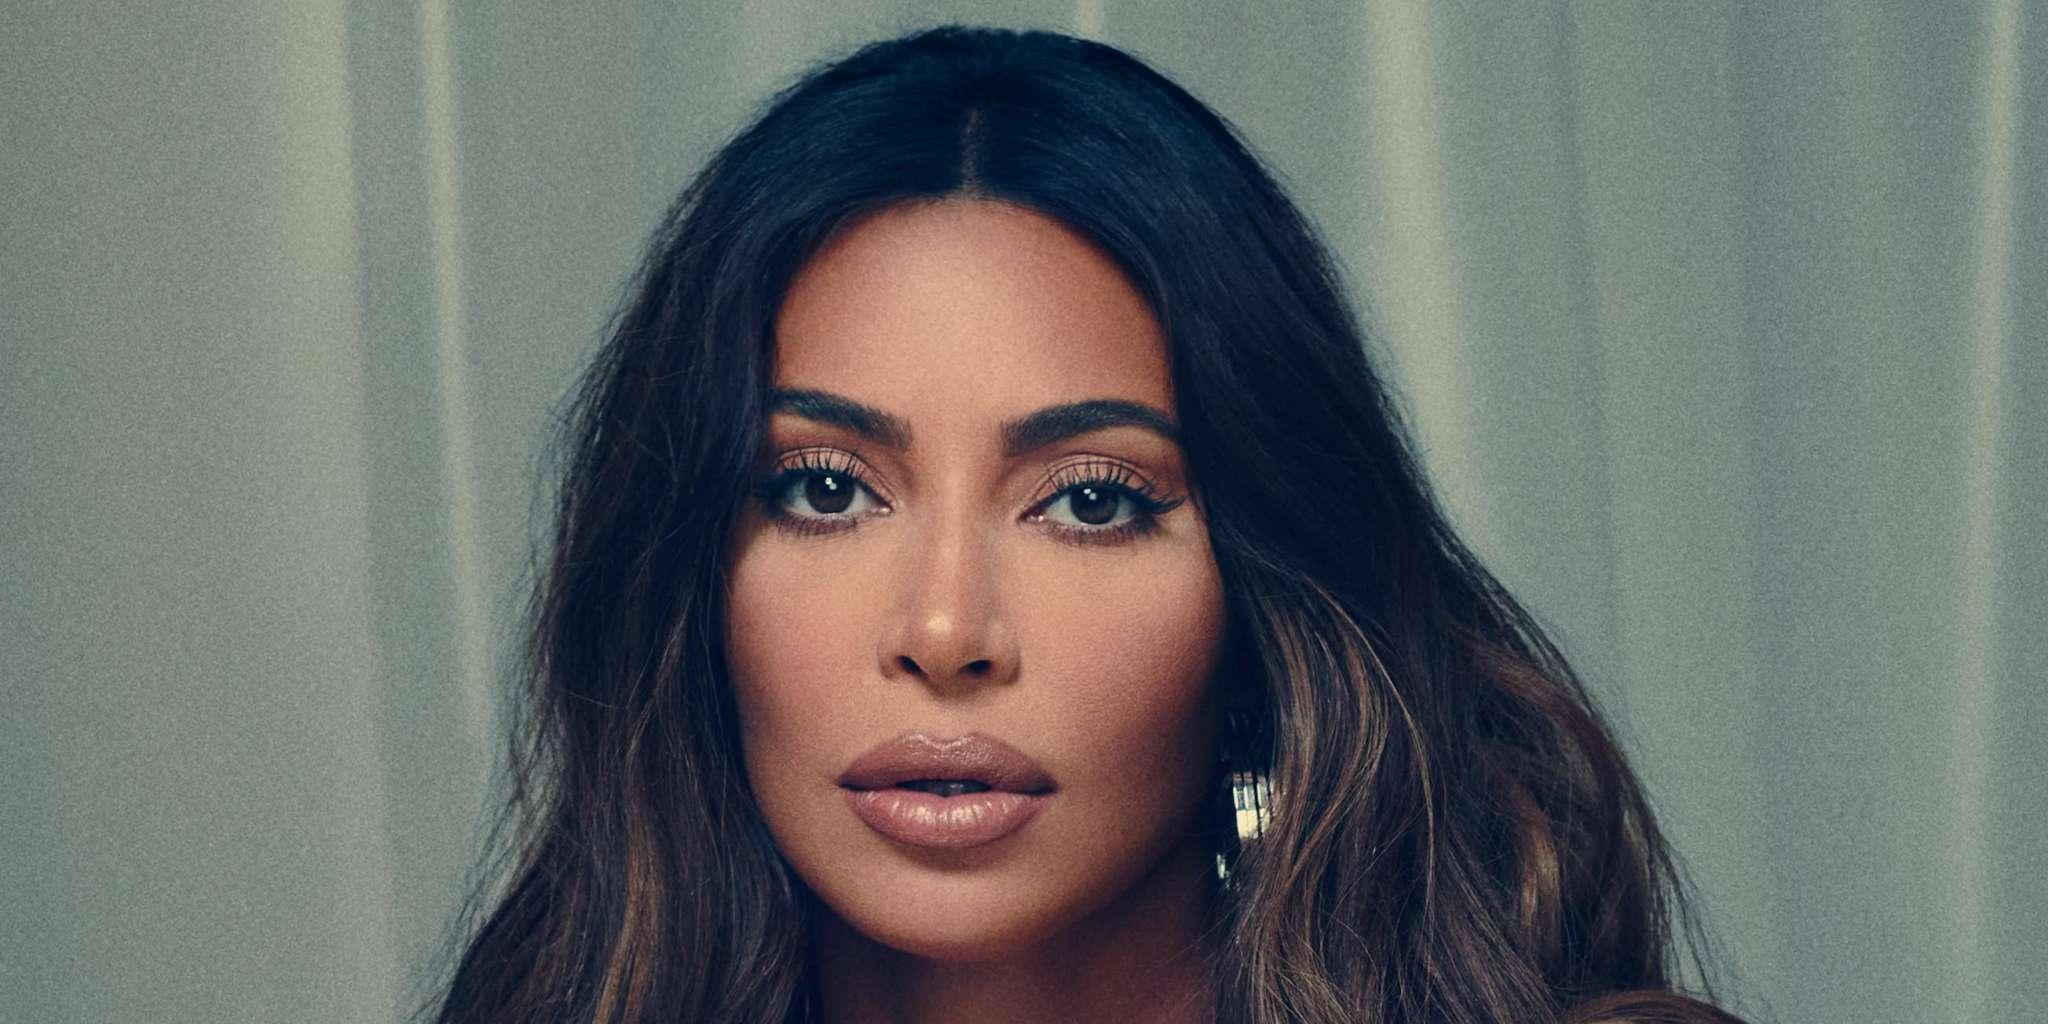 KUWTK: Kim Kardashian Almost Bares It All While Sultrily Posing In Bed With Nothing But A Sheet Covering Her